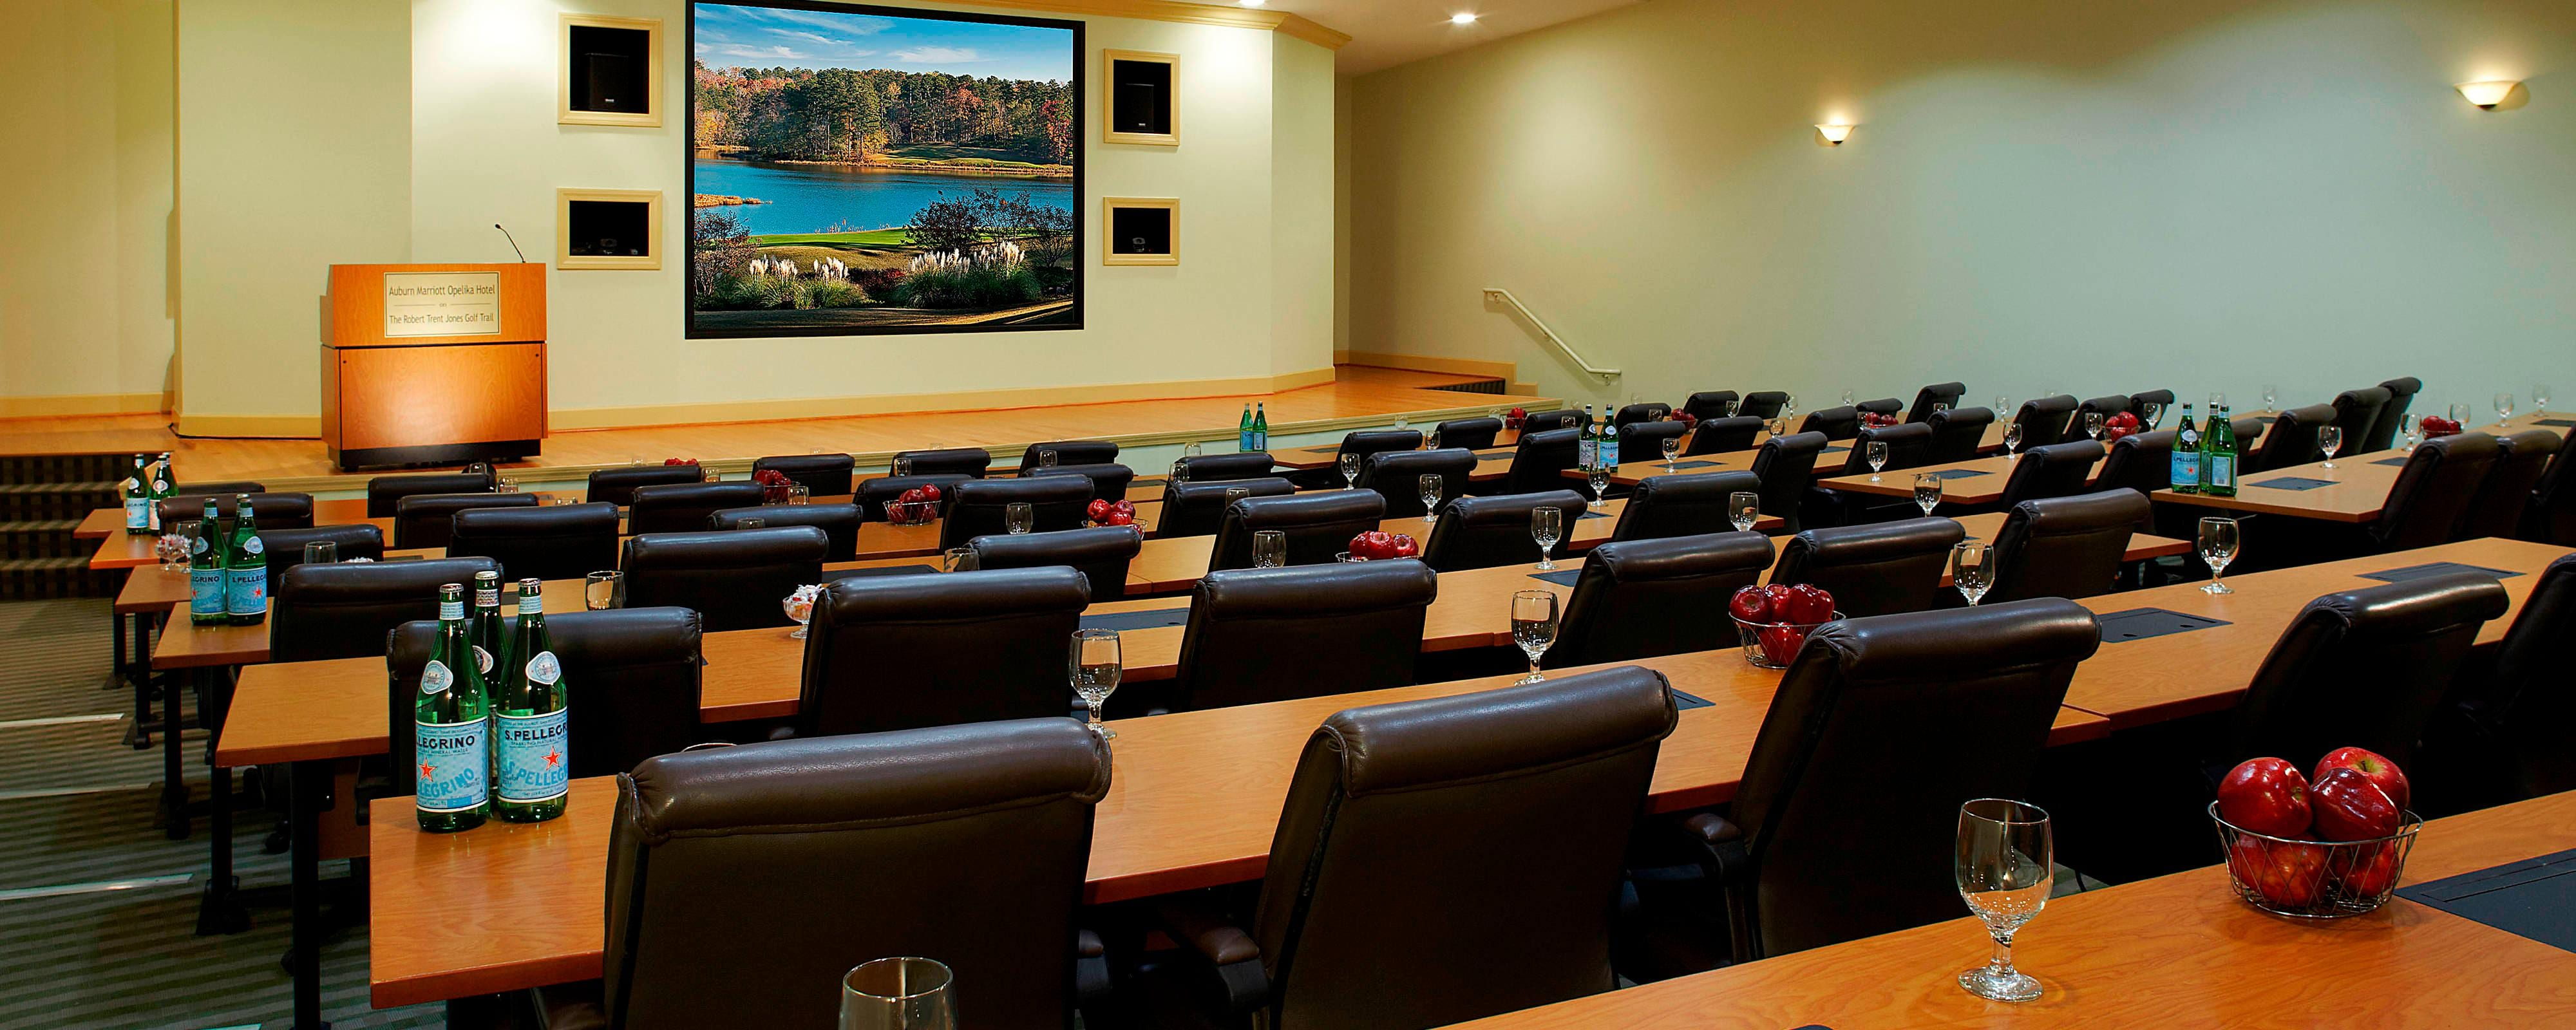 Auburn, Alabama meeting room